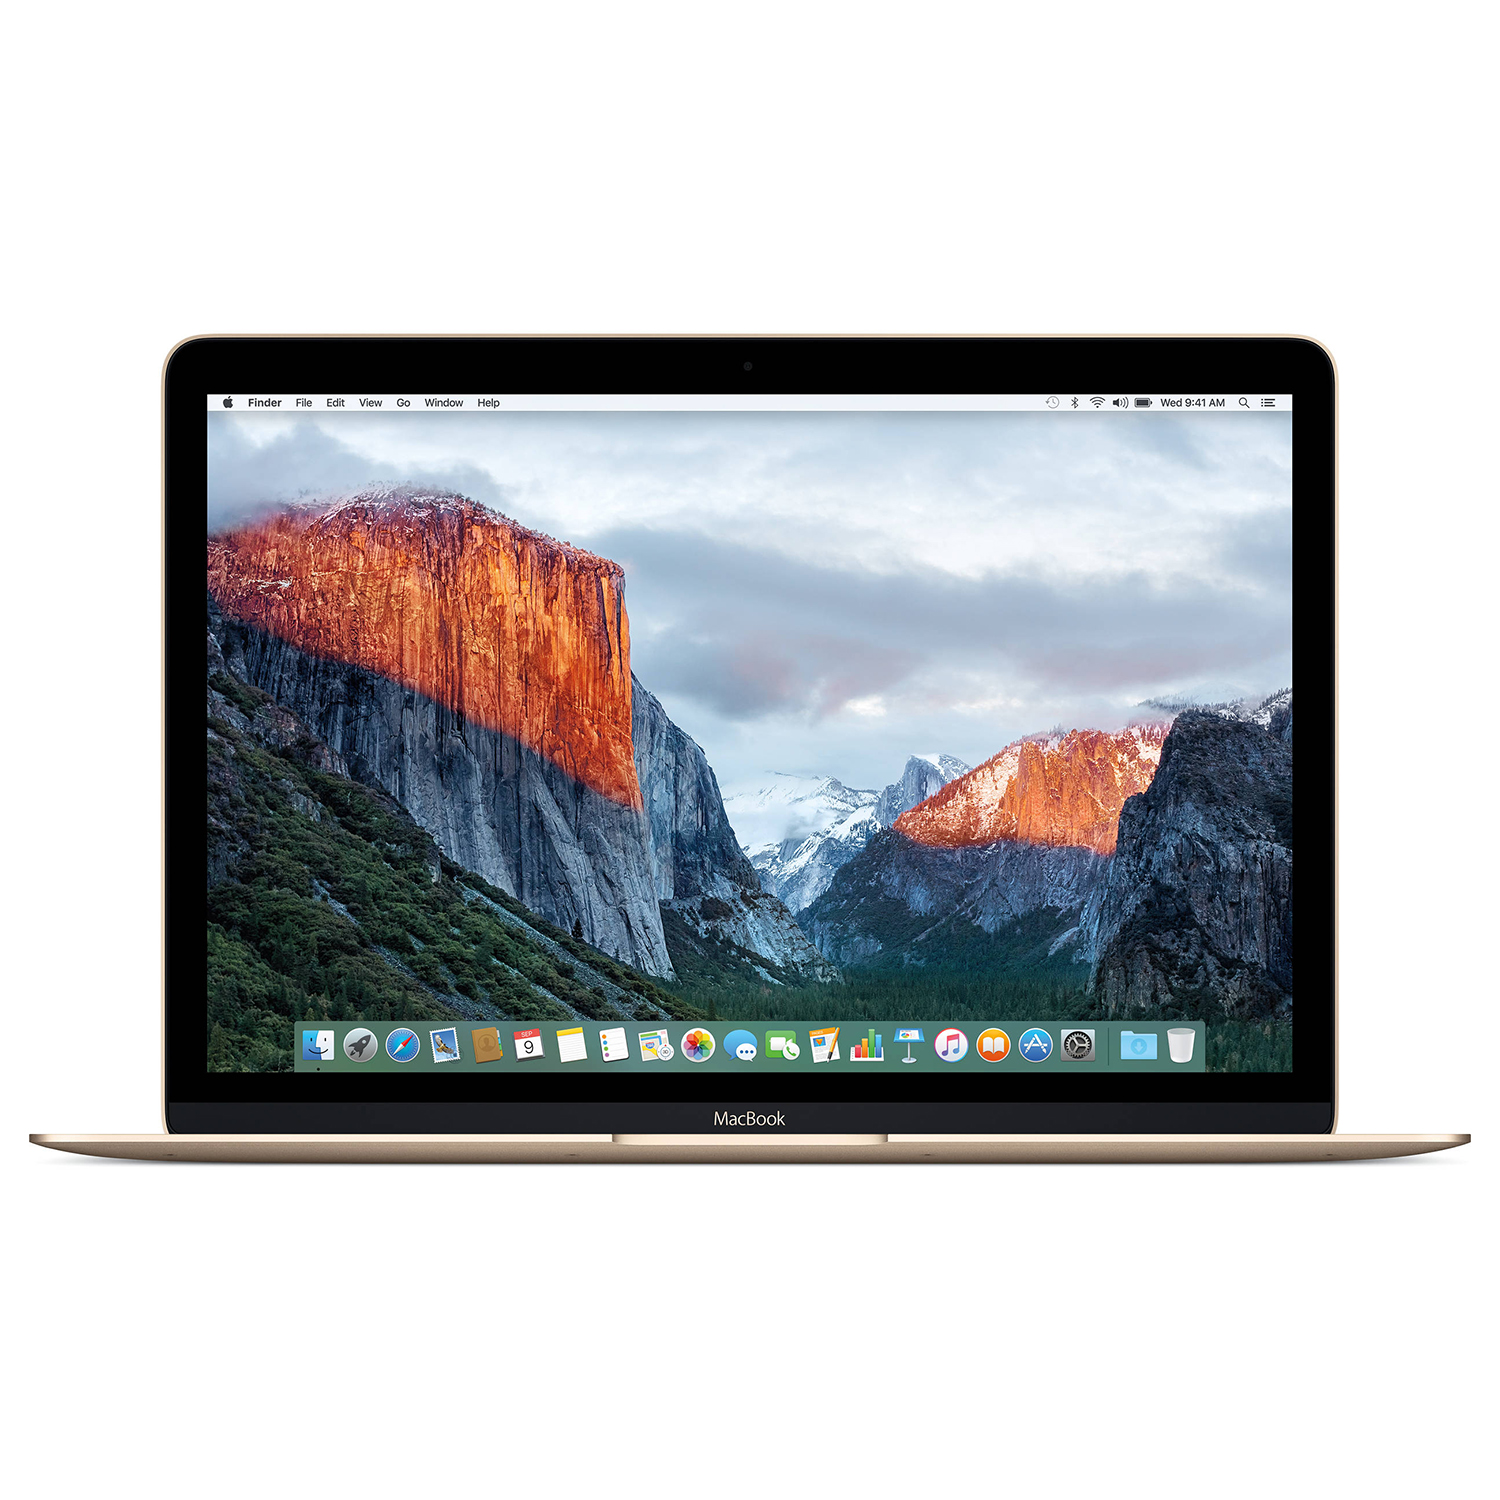 "Apple MacBook 12"" Core m3 8 GB RAM 256 GB flash storage English by Apple"